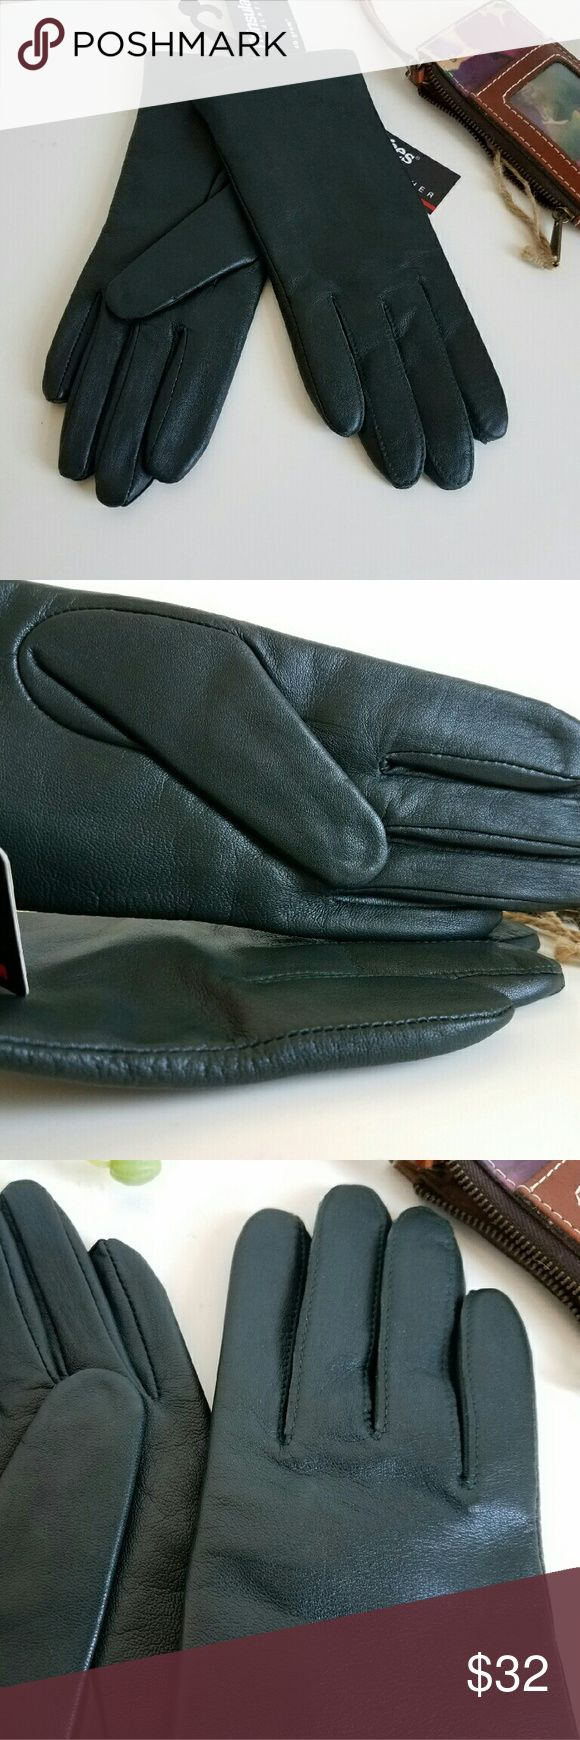 Womens leather gloves thinsulate lining - Women S Fownes Brothers Leather Gloves Size S Handcrafted From Supple Sheepskin For A Flexible Fit